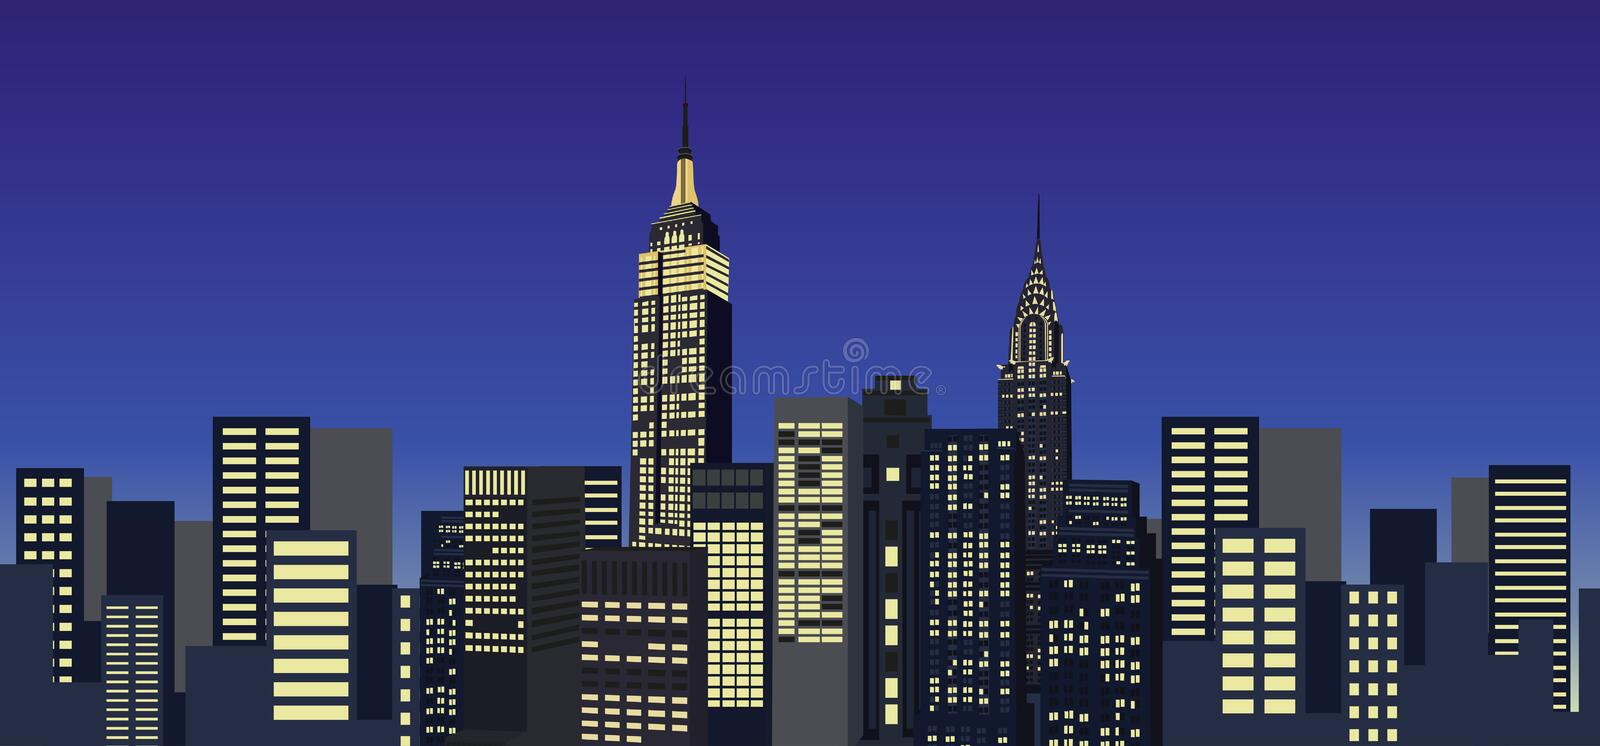 Grattacieli di new york illustrazione vettoriale for Disegni new york